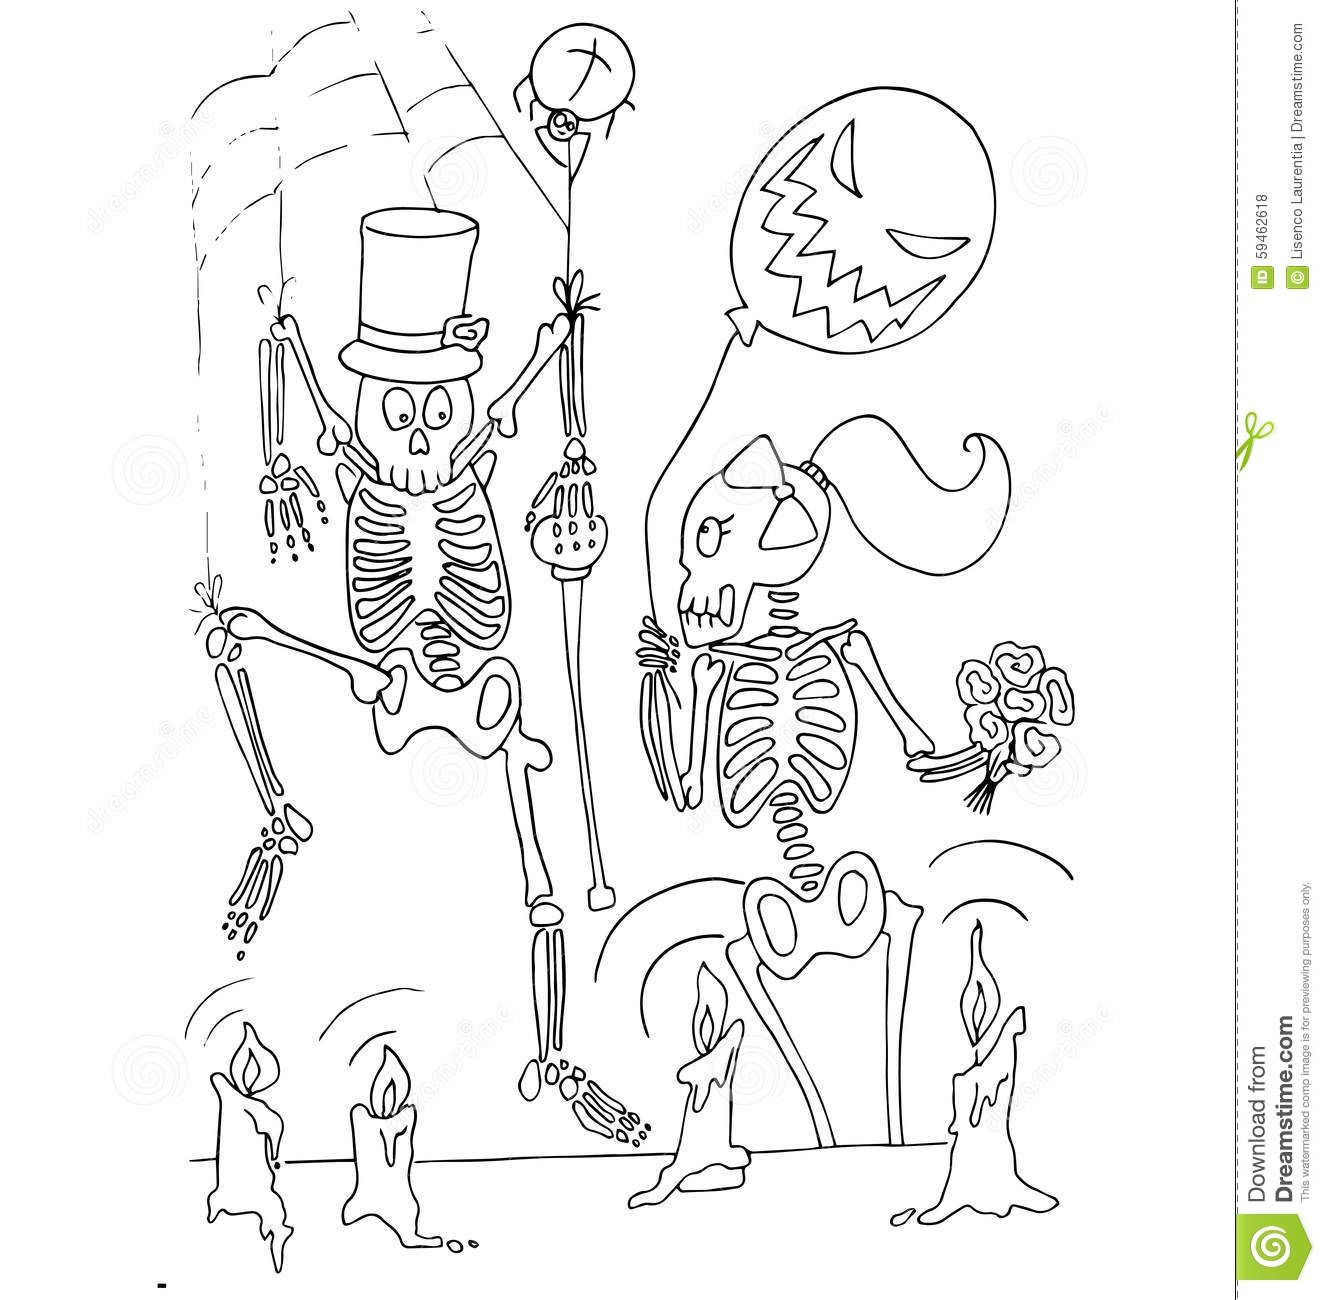 coloring hands pages skeleton 2020